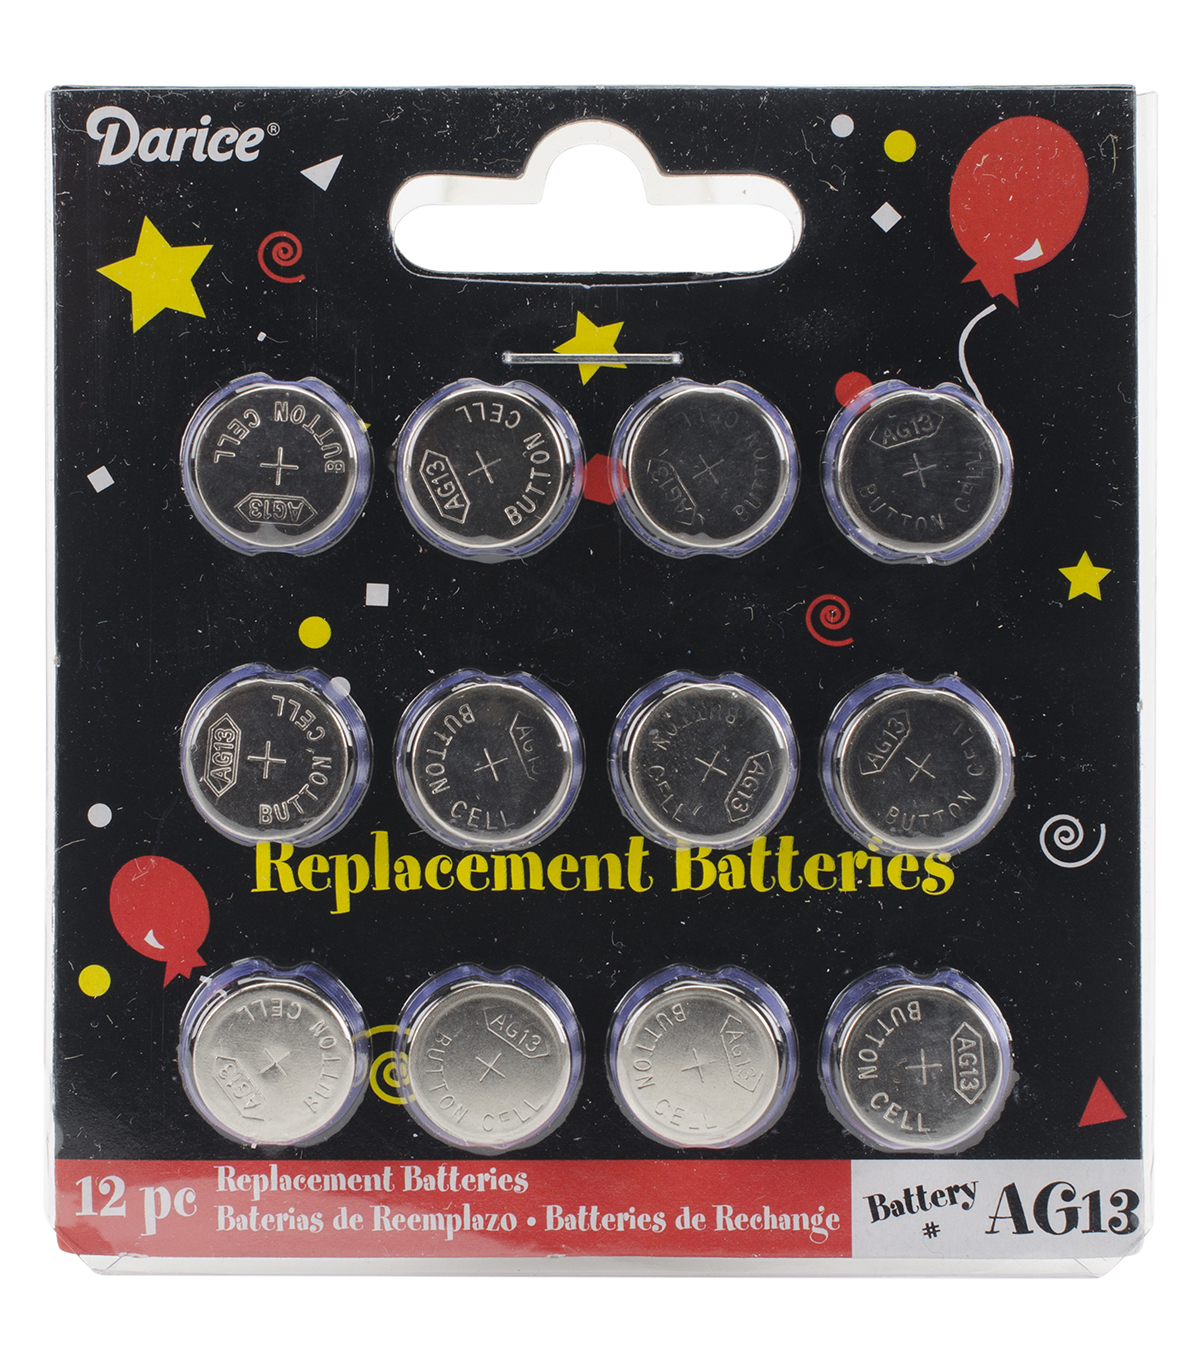 Darice® AG13 Replacement Batteries For Tea Lights